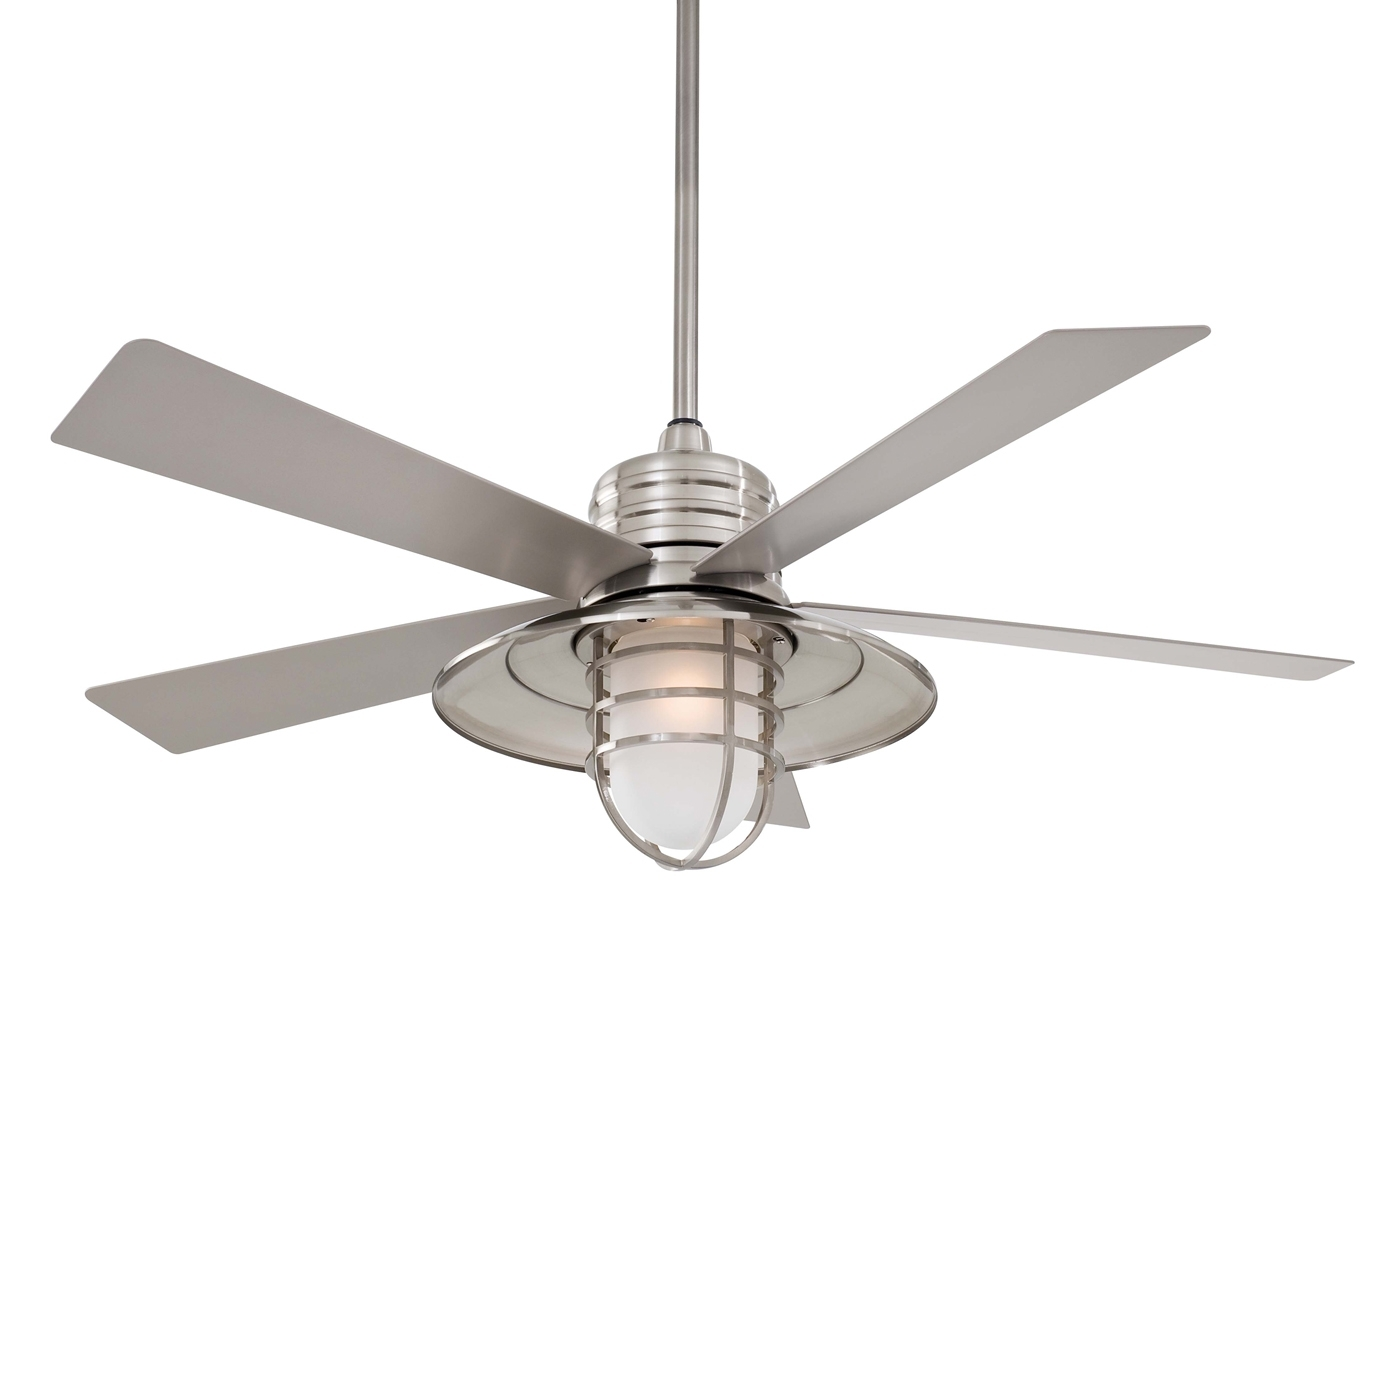 [%mini Outdoor Ceiling Fan] – 28 Images – Ceiling Fan Fixtures 72 Inch Throughout Well Liked 72 Inch Outdoor Ceiling Fans With Light|72 Inch Outdoor Ceiling Fans With Light With Regard To Latest Mini Outdoor Ceiling Fan] – 28 Images – Ceiling Fan Fixtures 72 Inch|2019 72 Inch Outdoor Ceiling Fans With Light Pertaining To Mini Outdoor Ceiling Fan] – 28 Images – Ceiling Fan Fixtures 72 Inch|popular Mini Outdoor Ceiling Fan] – 28 Images – Ceiling Fan Fixtures 72 Inch With 72 Inch Outdoor Ceiling Fans With Light%] (View 8 of 20)